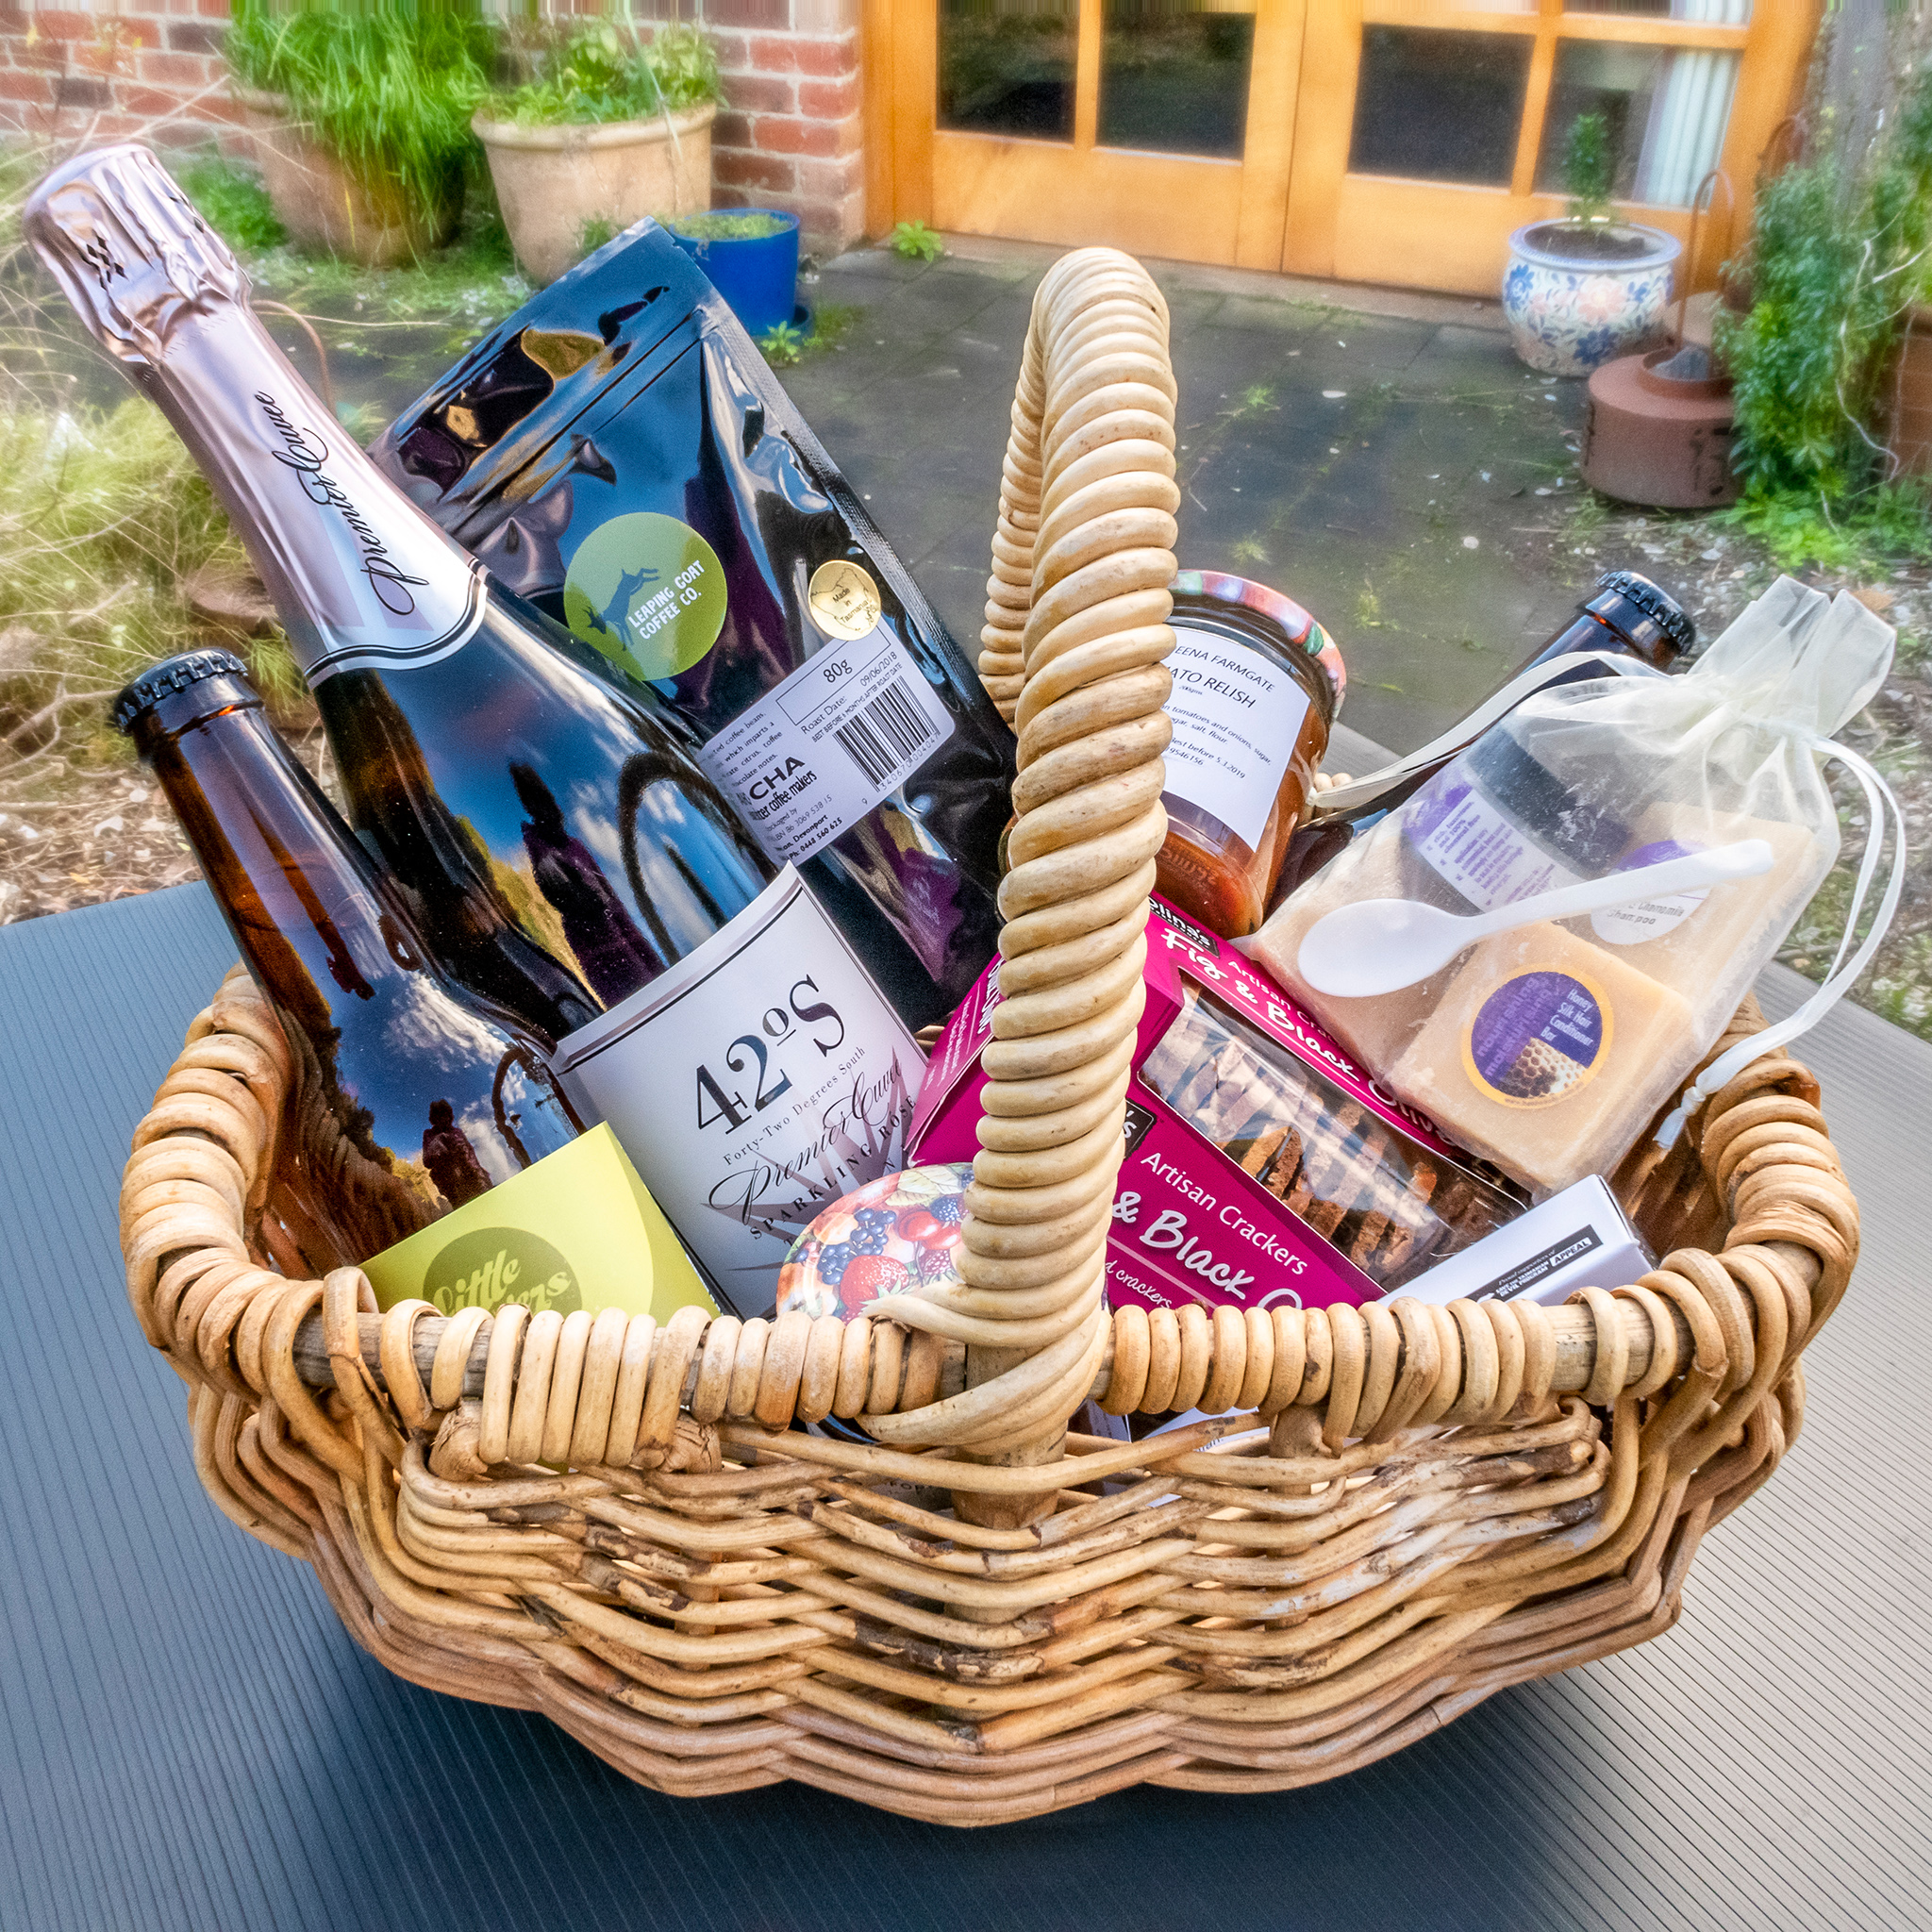 Basket containing wine, beer, ground coffee, snack foods and a small bag of spa toiletries.